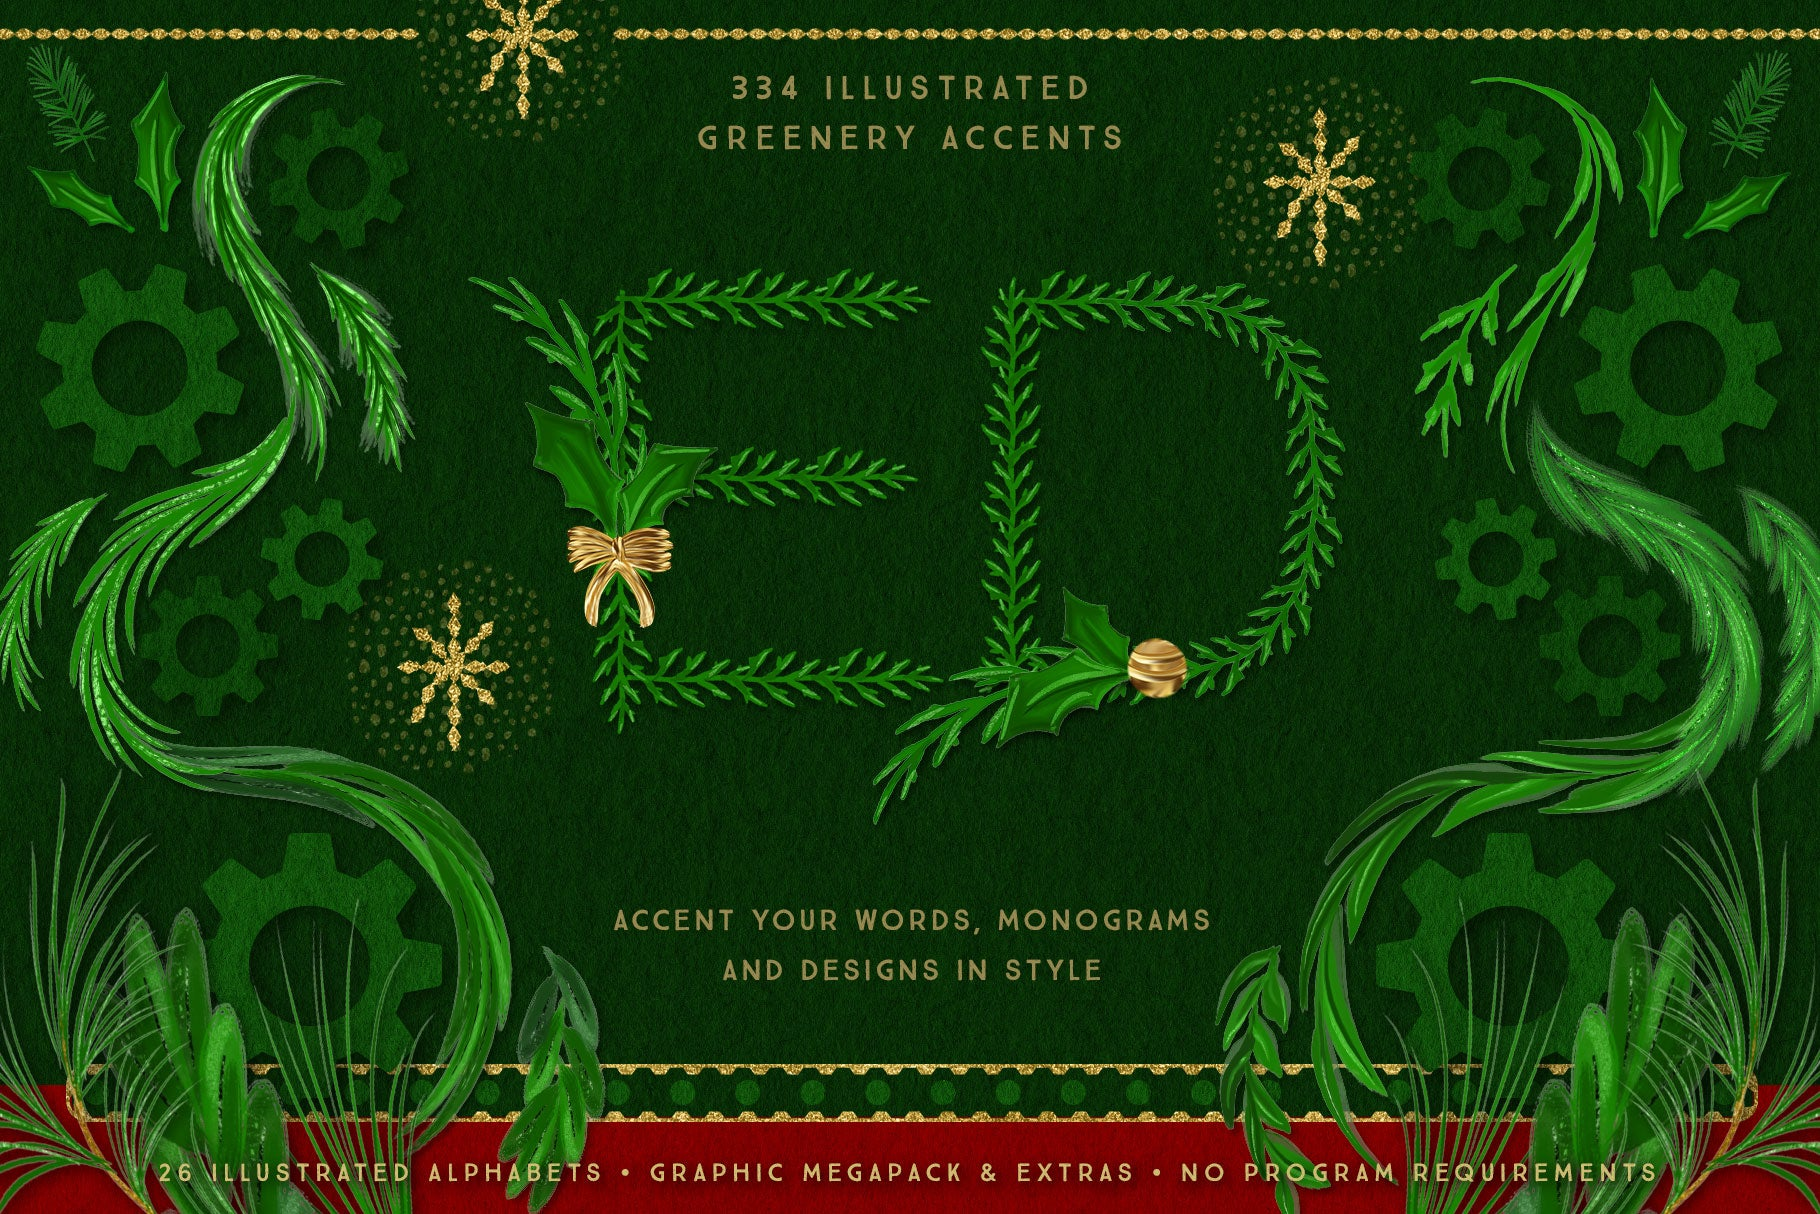 Luxe Christmas & Holiday Greenery Alphabets: greenery accents demo image